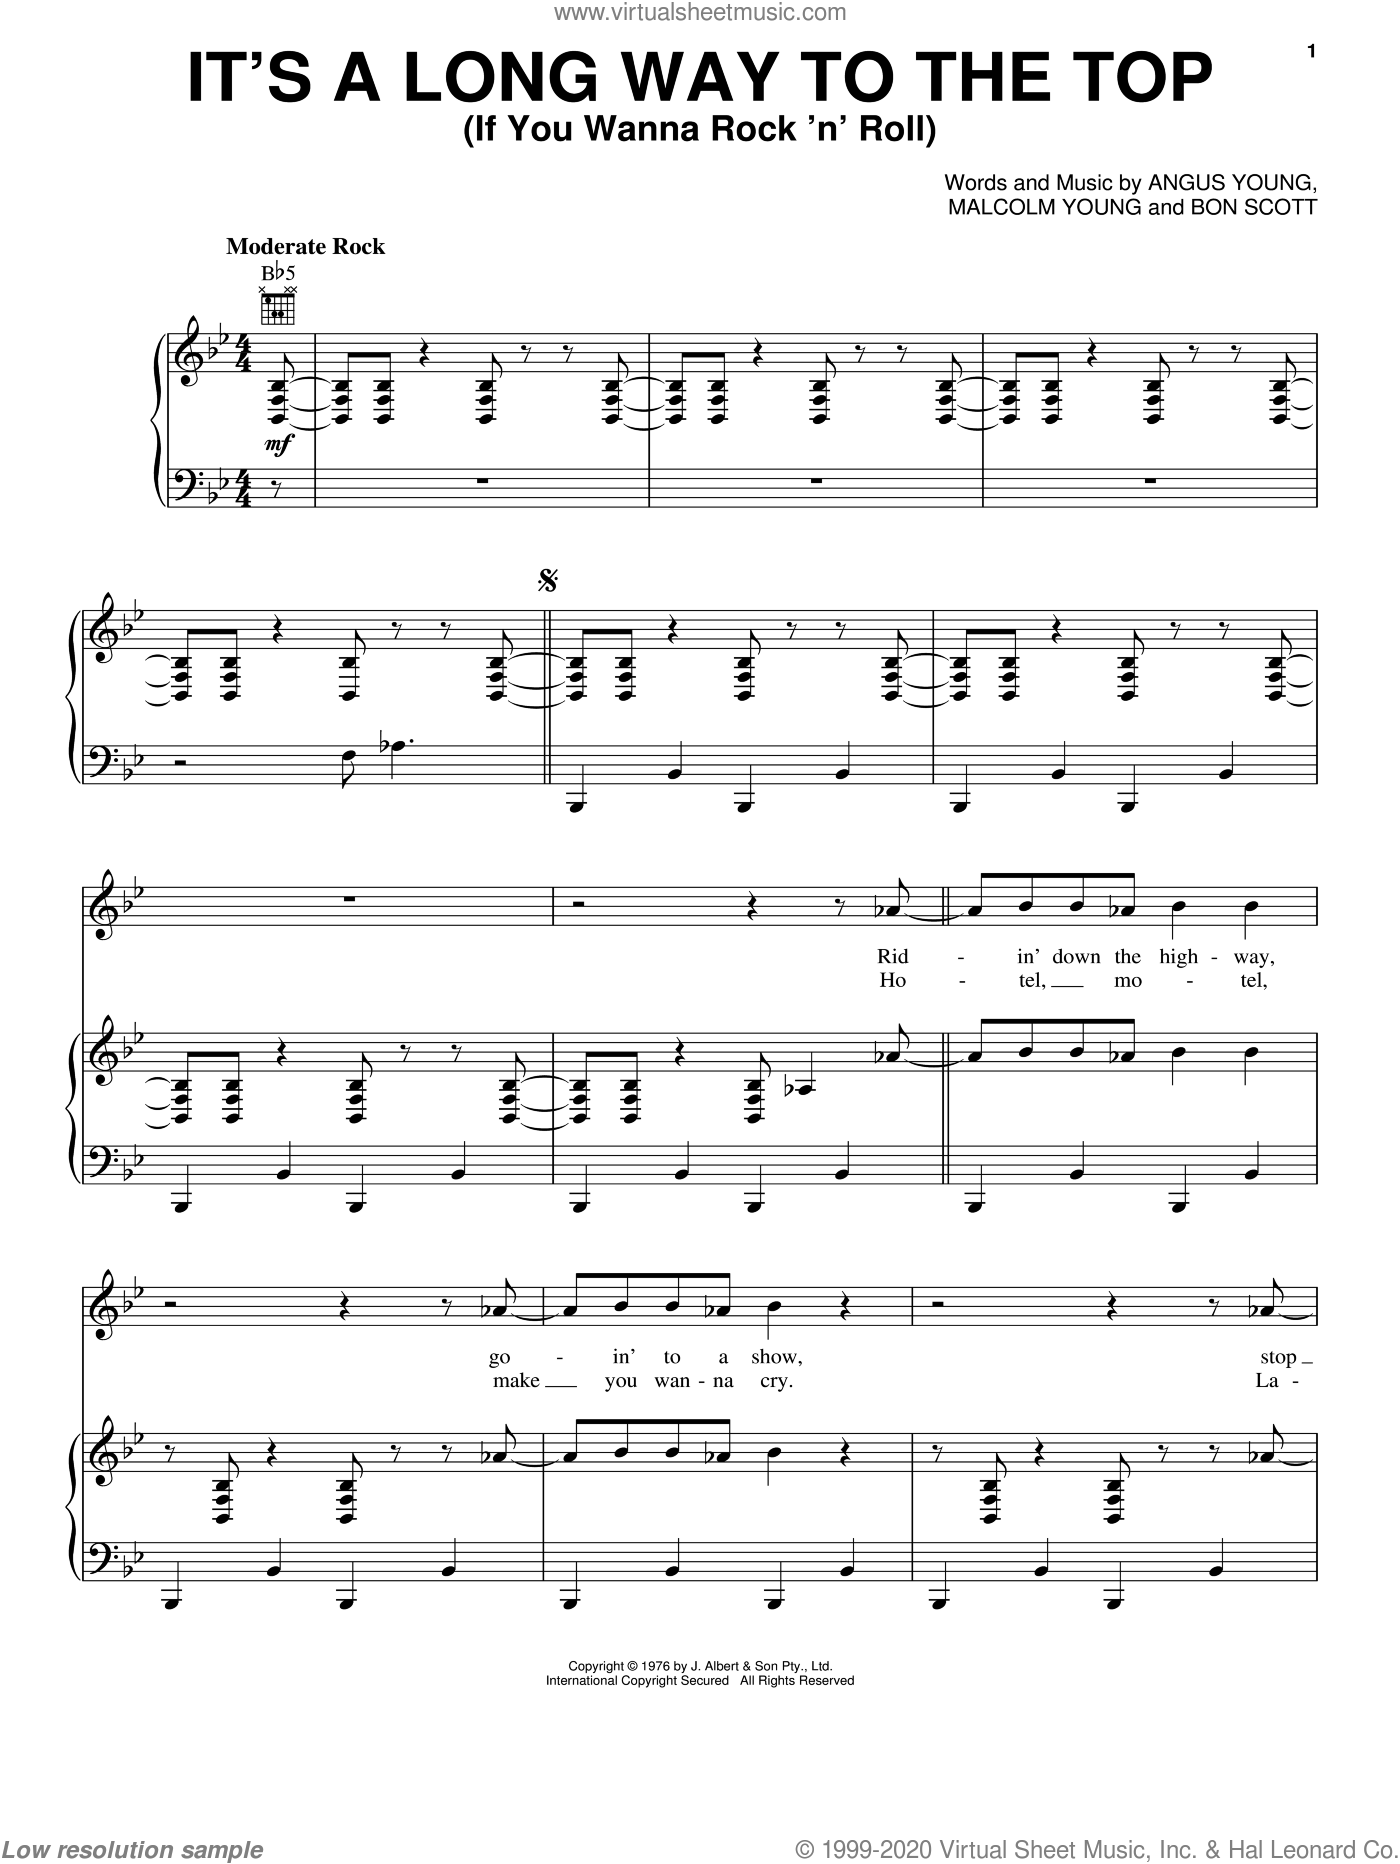 It's A Long Way To The Top (If You Wanna Rock 'N' Roll) sheet music for voice, piano or guitar by Malcolm Young